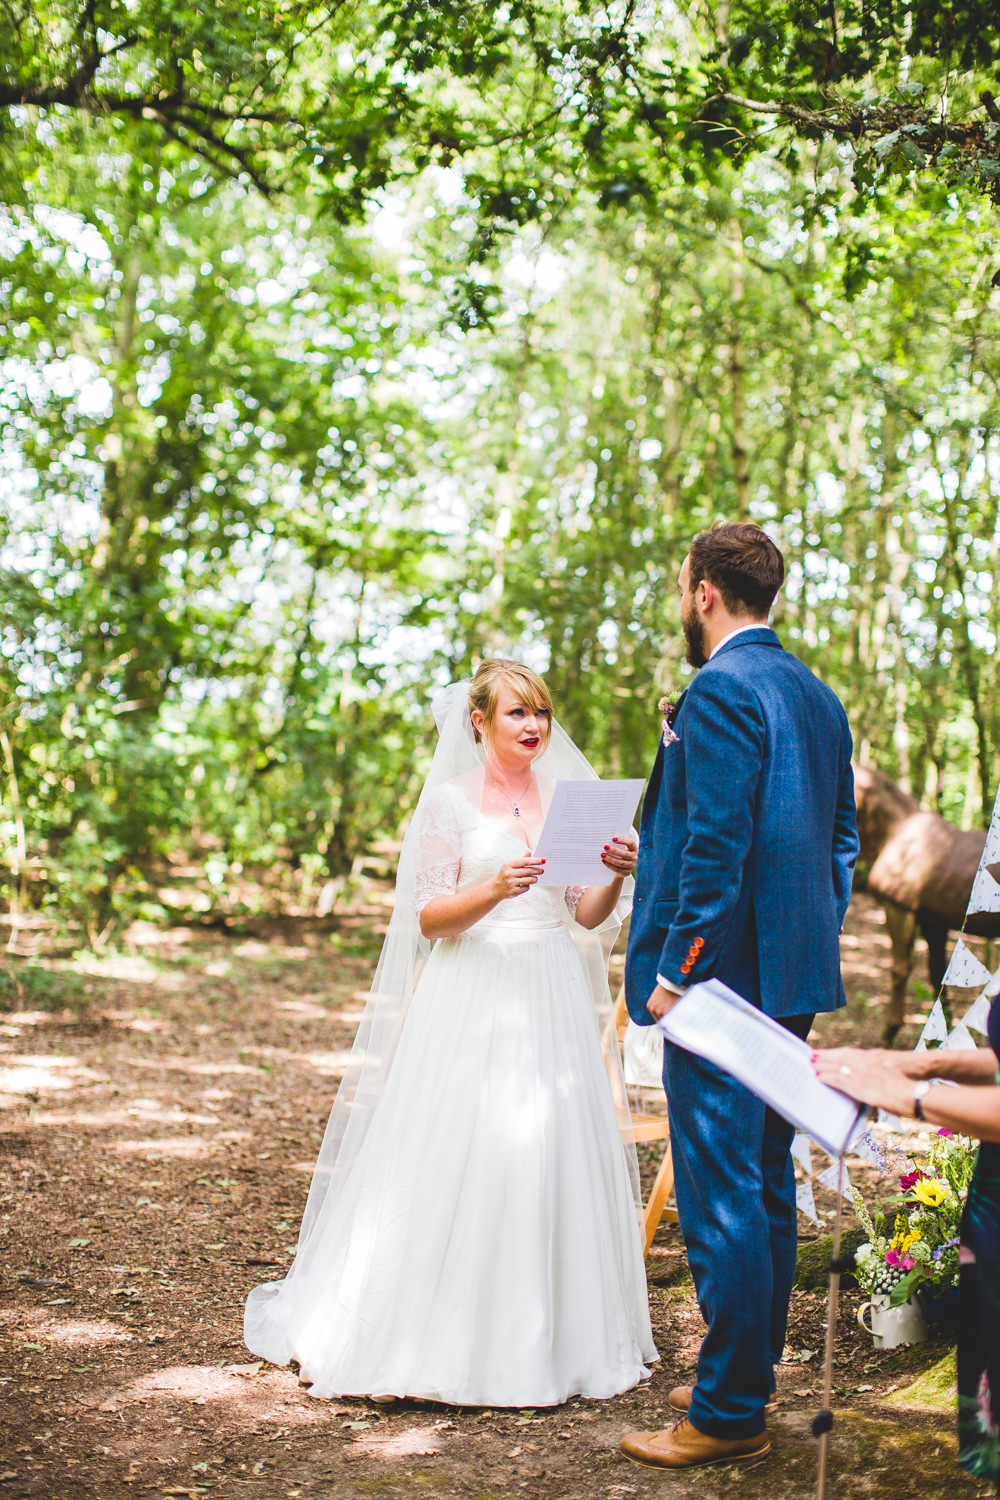 Bride Bridal Dress Gown V Neck Lace Sleeve Layered Veil Three Piece Tweed Groom Wise Wedding Venue Livvy Hukins Photography